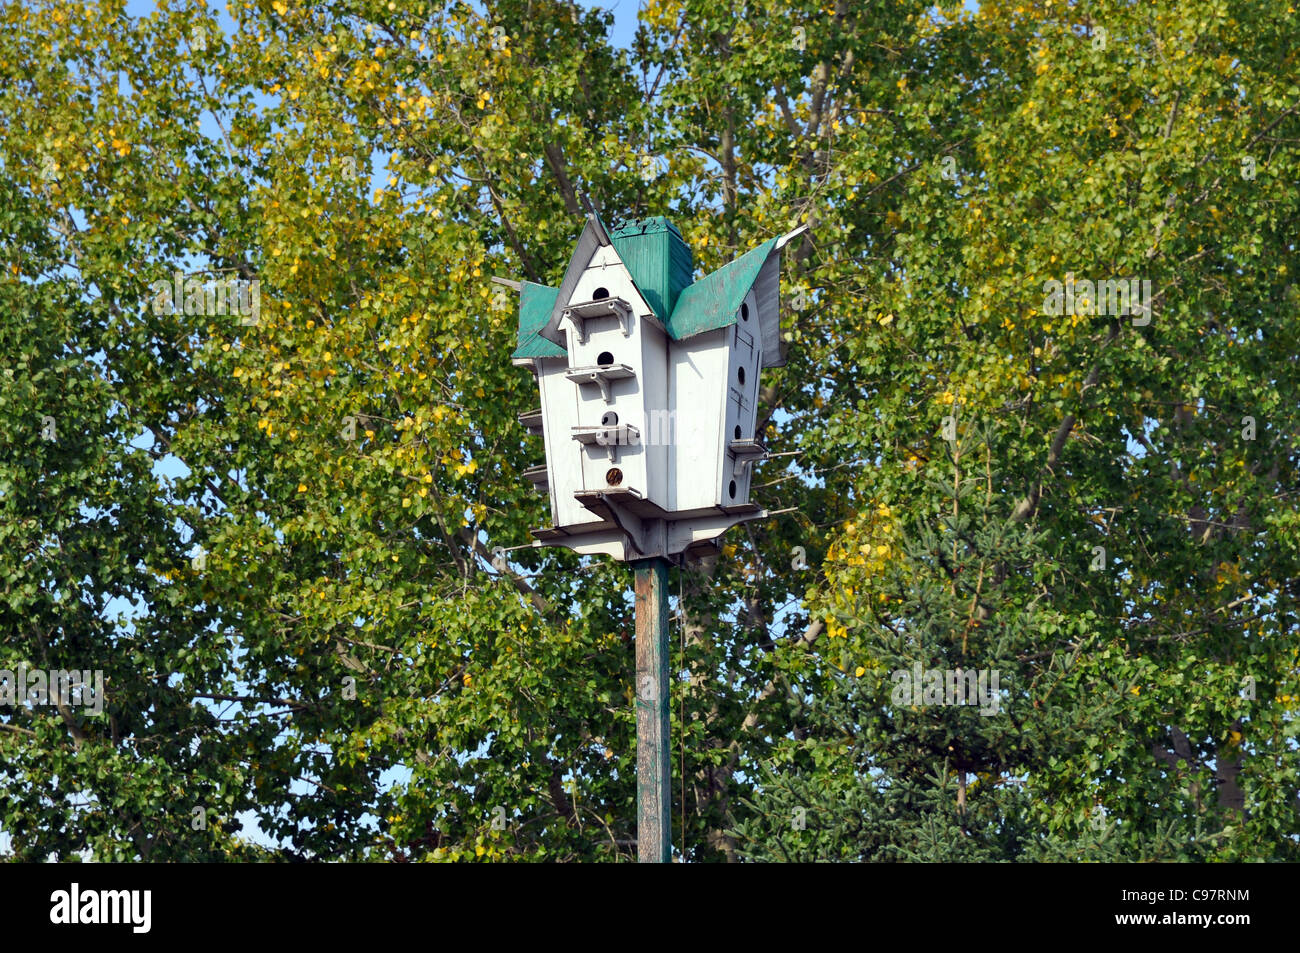 Wooden Birdhouse High Up Among The Trees - Stock Image